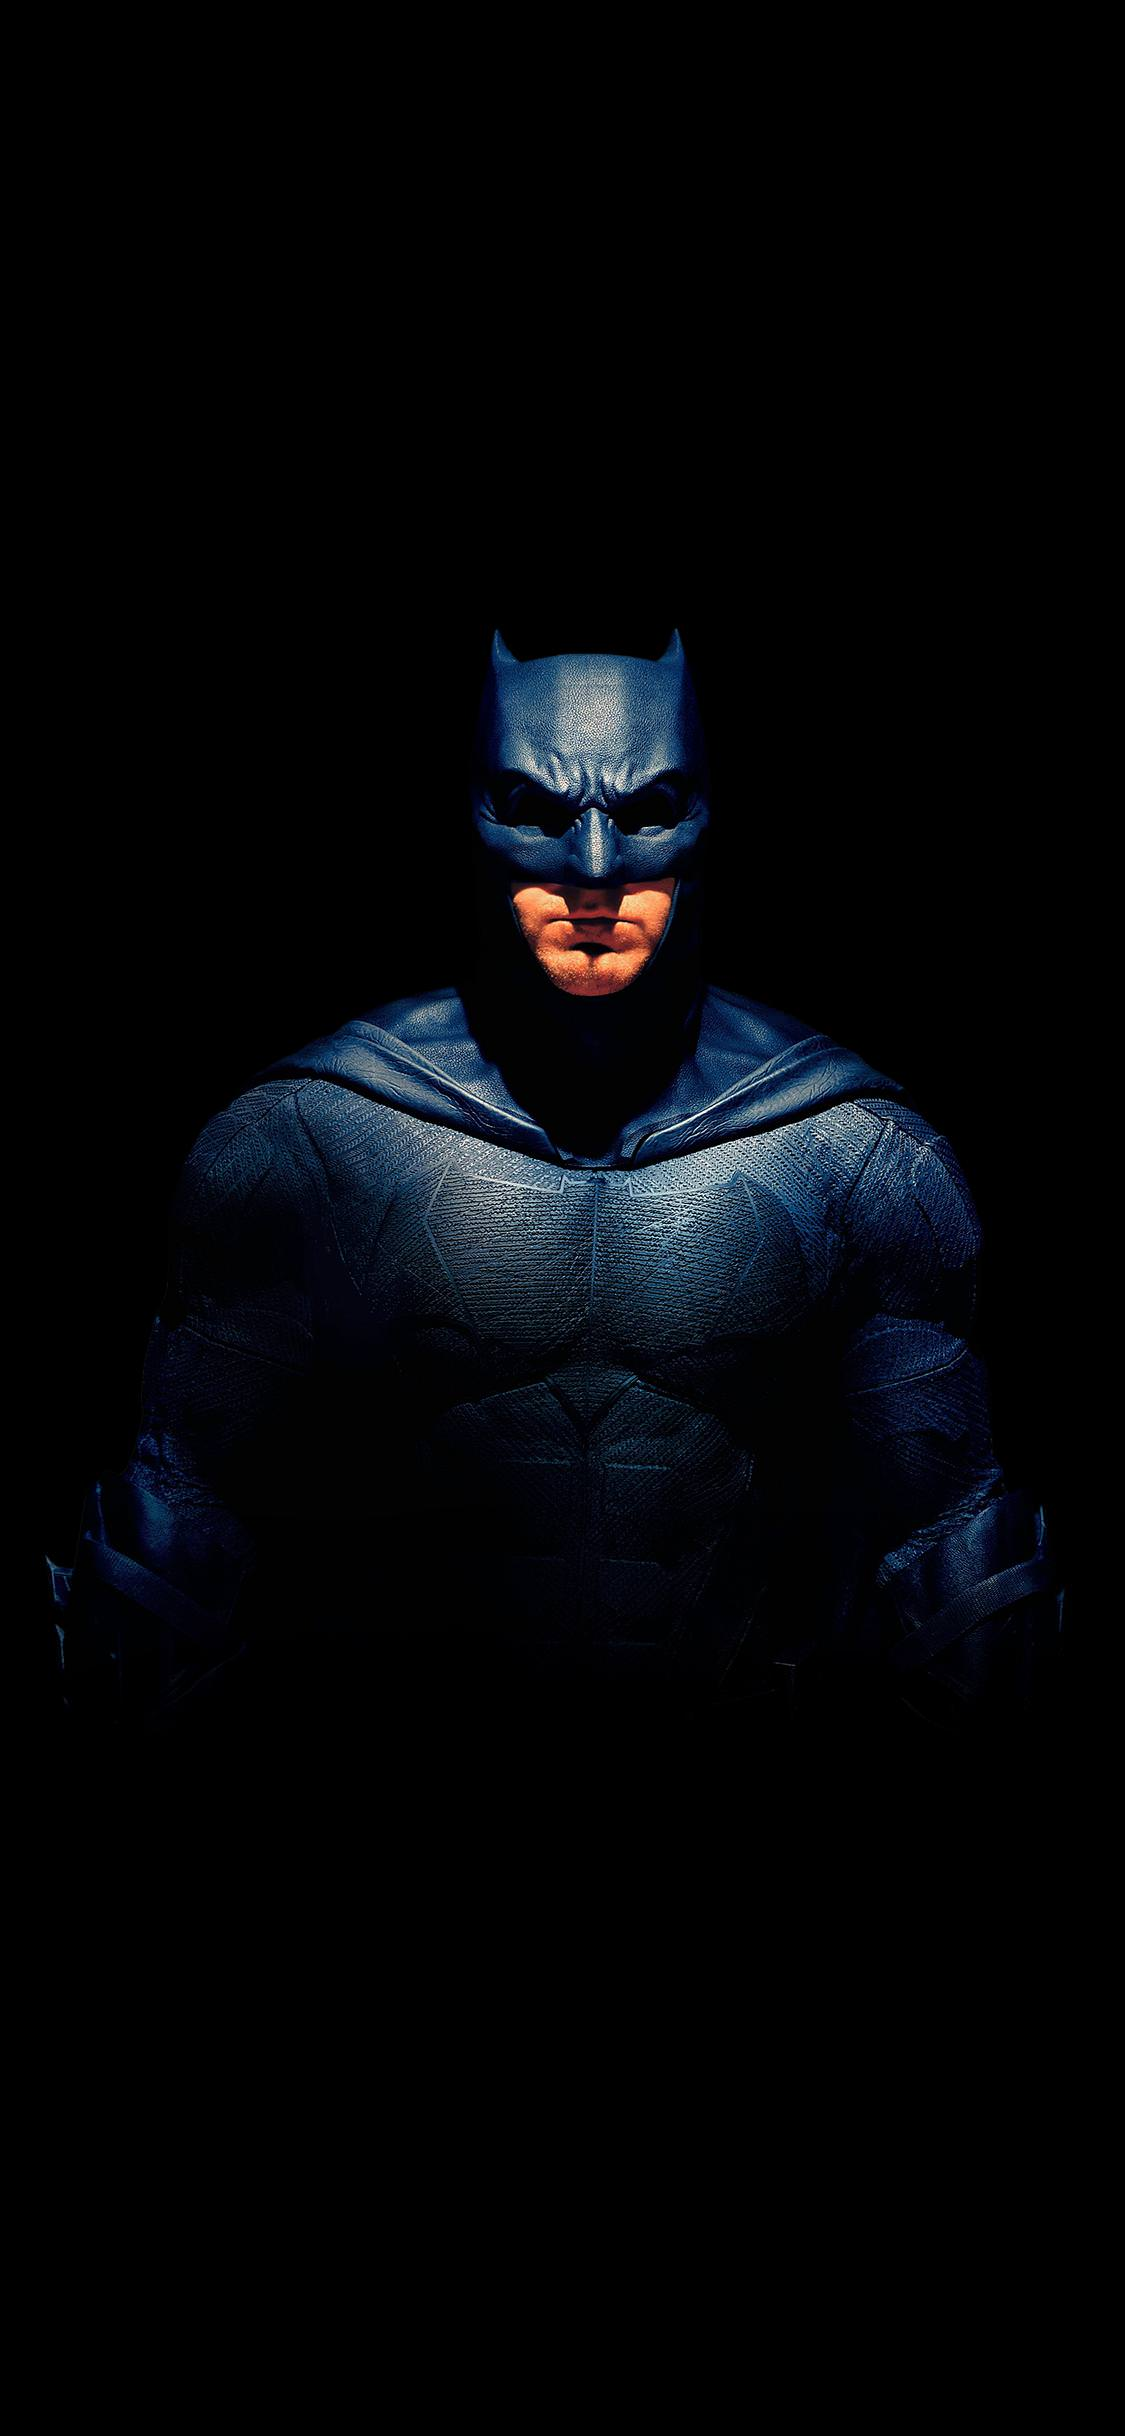 View Sfondo Batman Hd Images